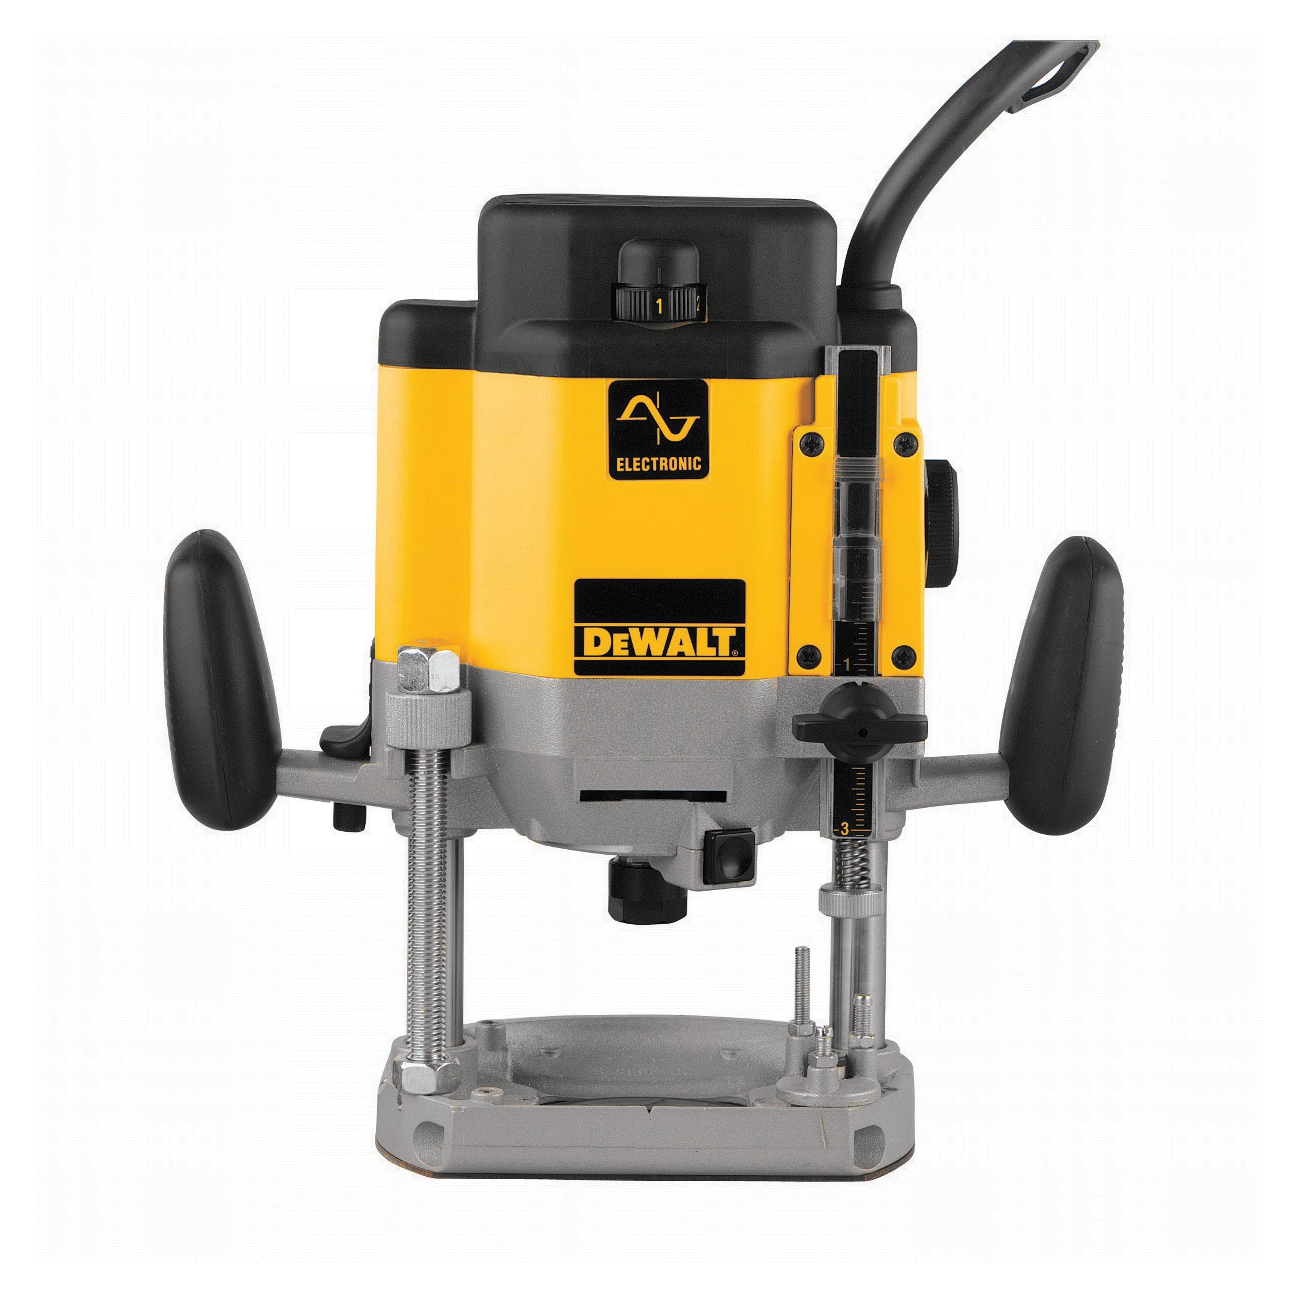 DeWALT® DW625 EVS Large Plunge Router Kit, 1/4 in, 1/2 in Chuck, 8000 to 22000 rpm, 3 hp, 120 VAC, Slide Switch